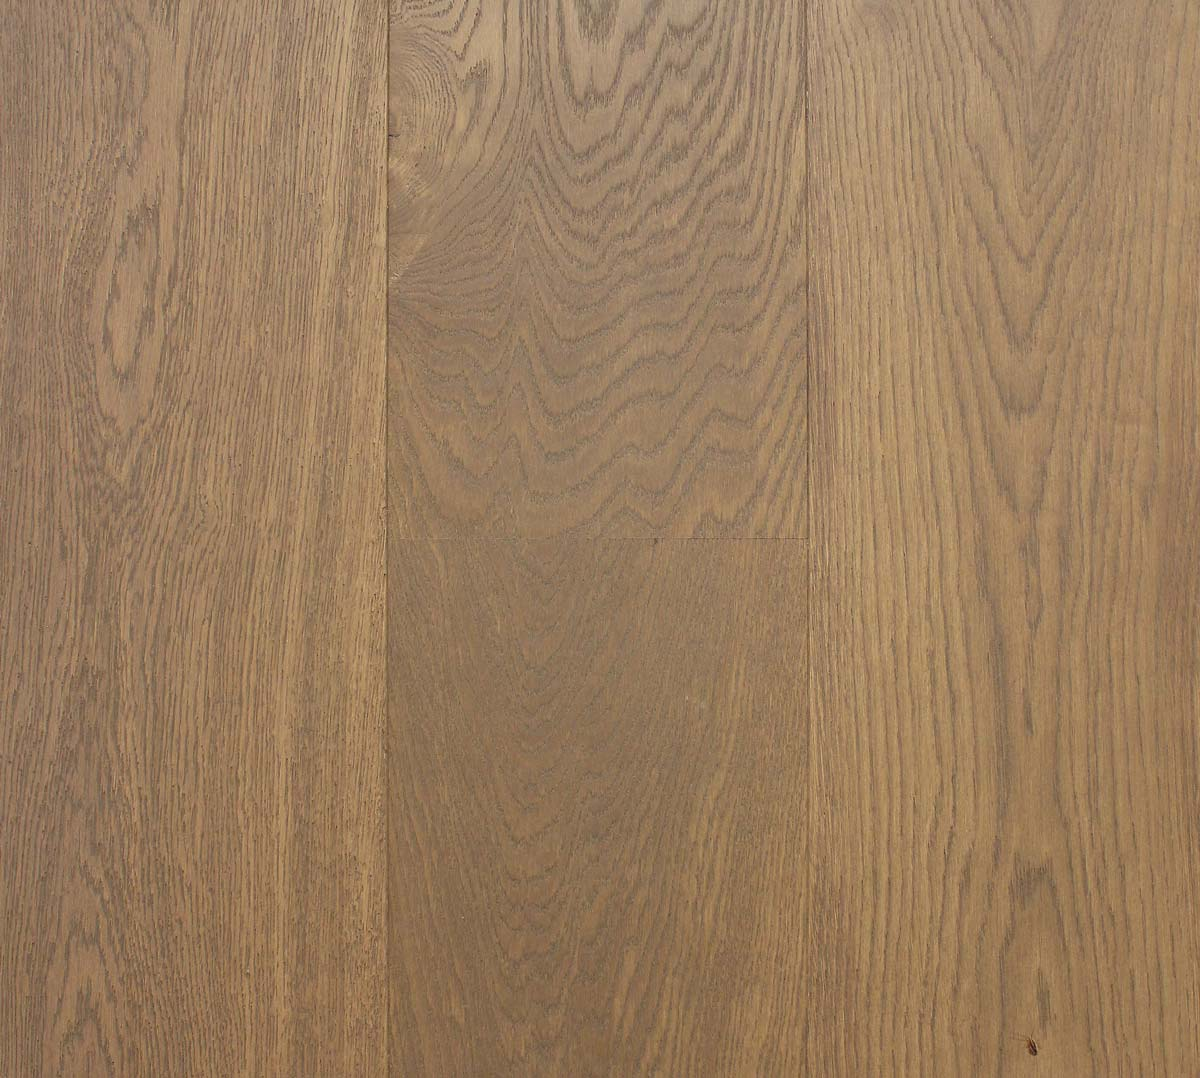 Outback Brown Oak Proline Floors Australia